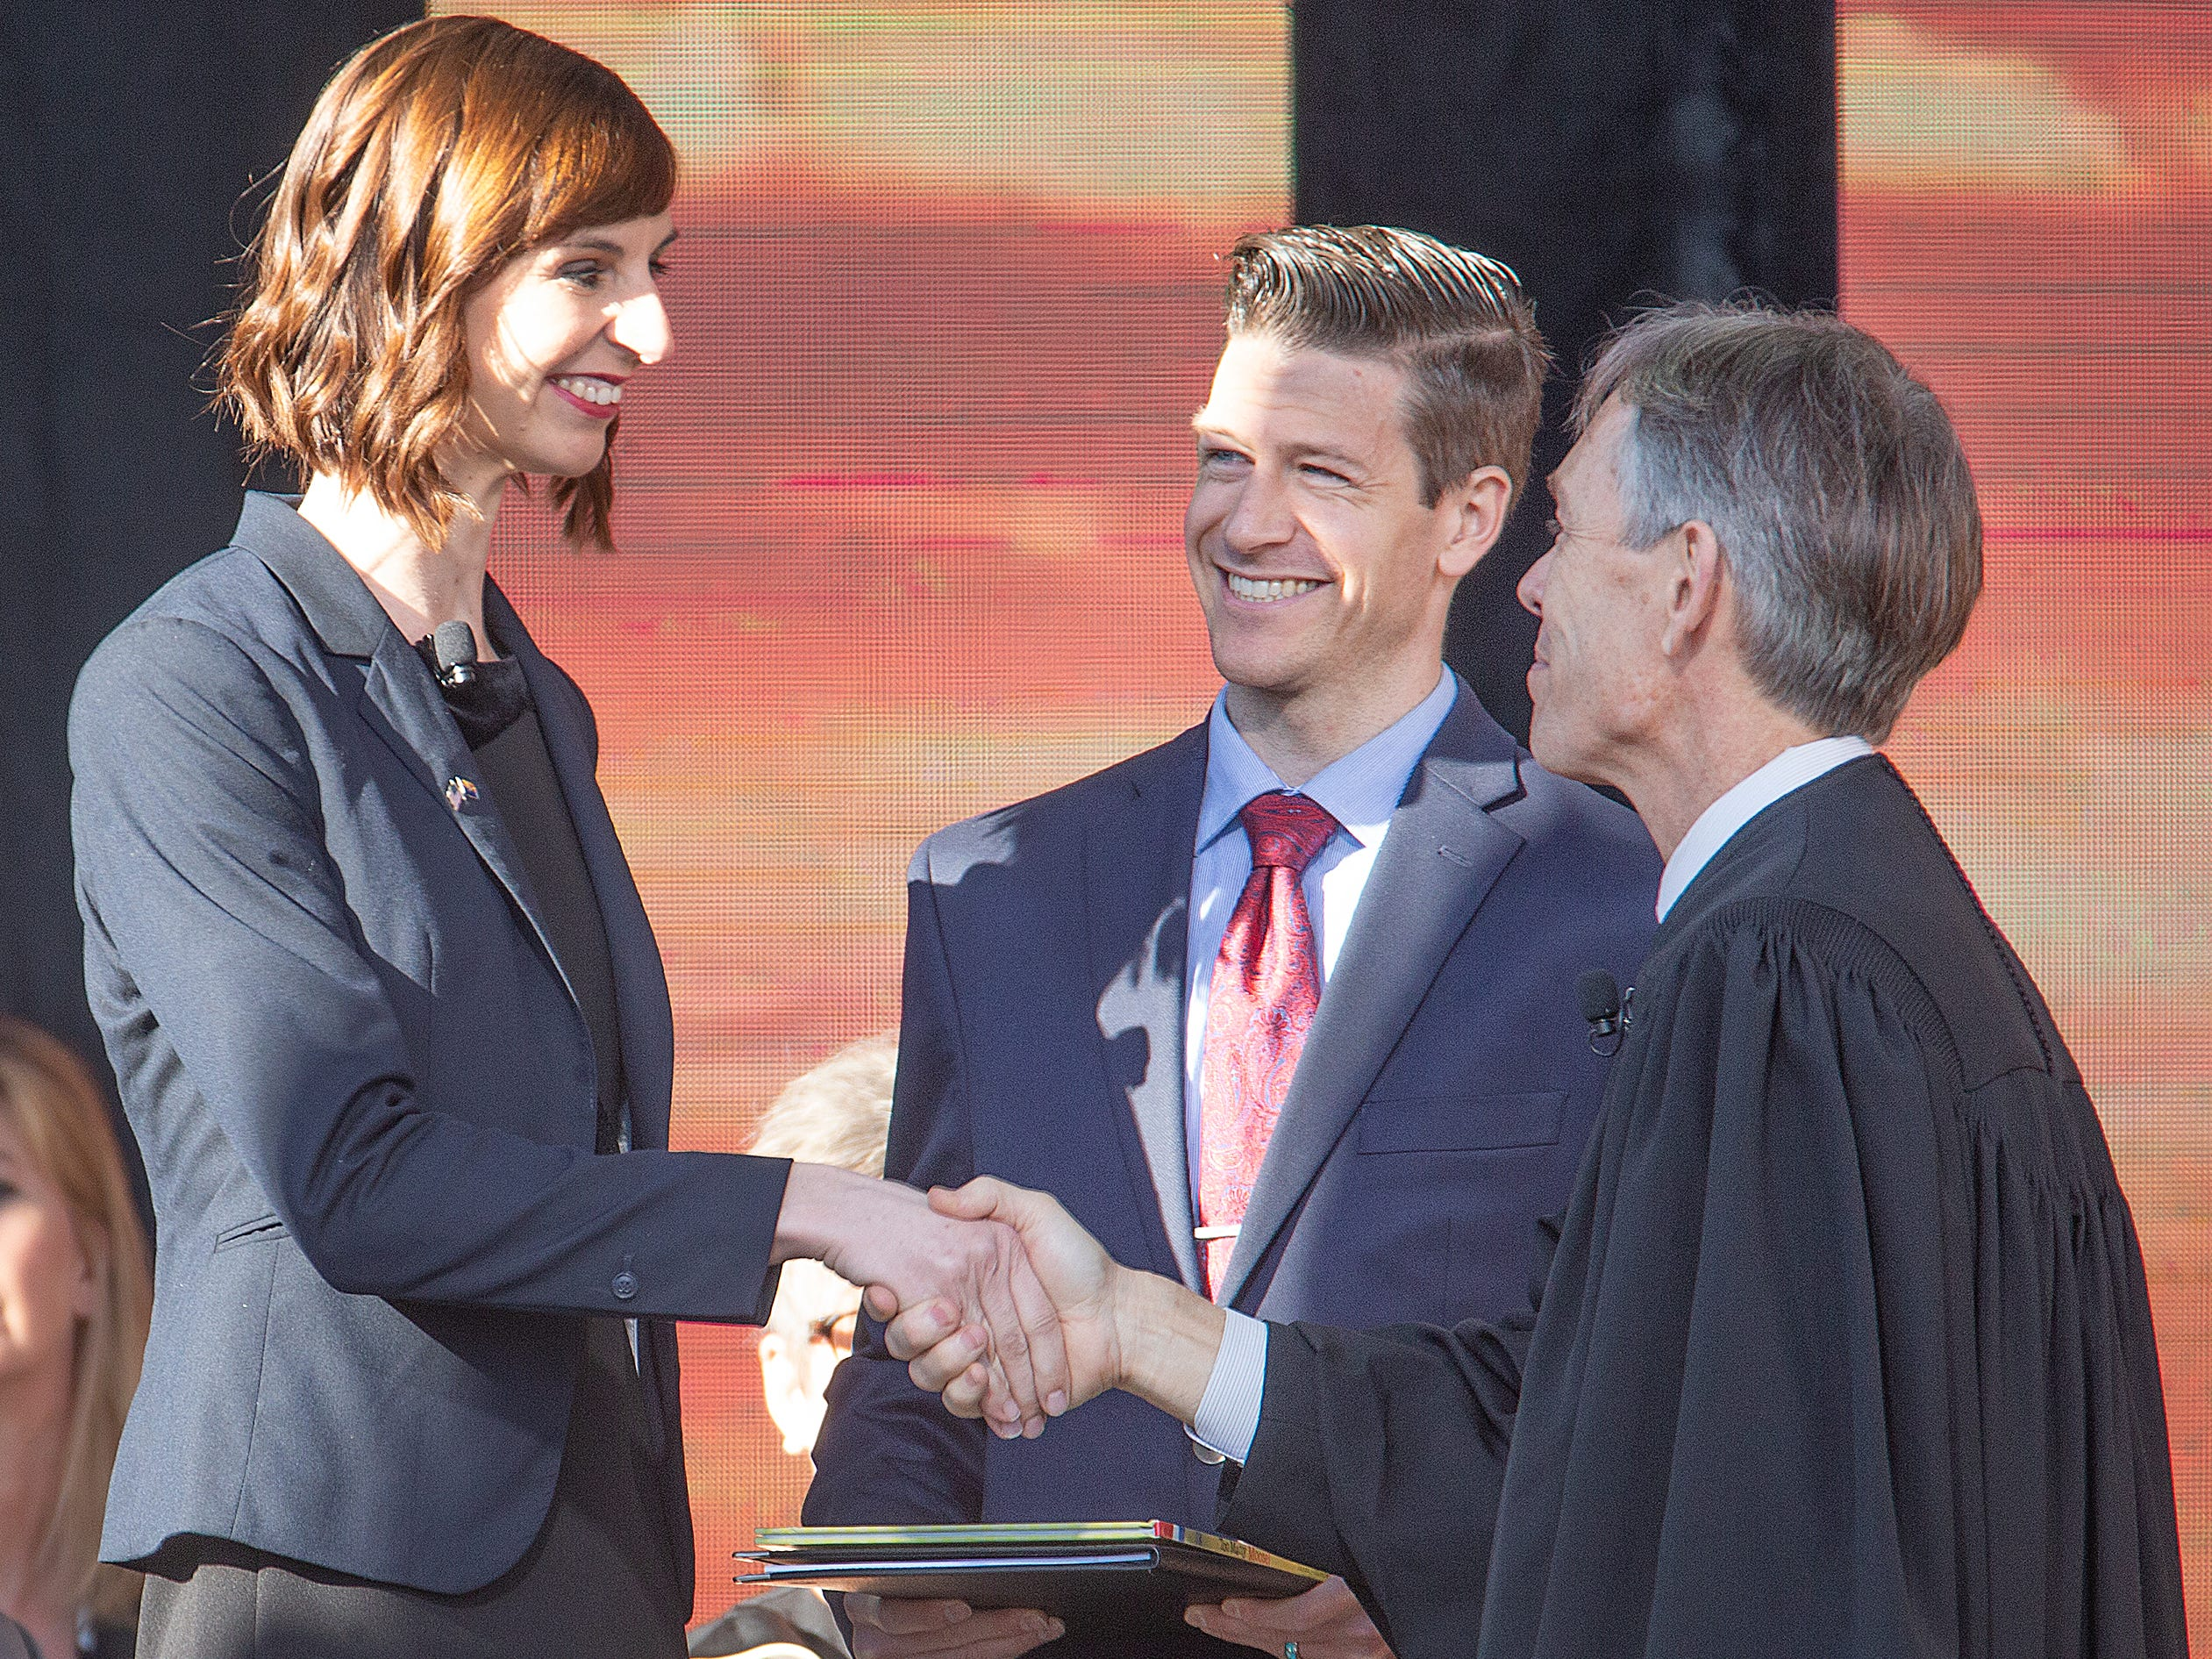 Kathy Hoffman is congratulated after being sworn in as Arizona superintendent of public instruction by Arizona Supreme Court Chief Justice Scott Bales at the Arizona Capitol in Phoenix at the 2019 State of Arizona Inauguration ceremony on Jan. 7, 2019.  Gov. Doug Ducey , Secretary of State Katie Hobbs, Attorney General Mark Brnovich, State Treasurer Kimberly Yee, Hoffman and State Mine Inspector Joe Hart were all sworn in to office during the ceremony.